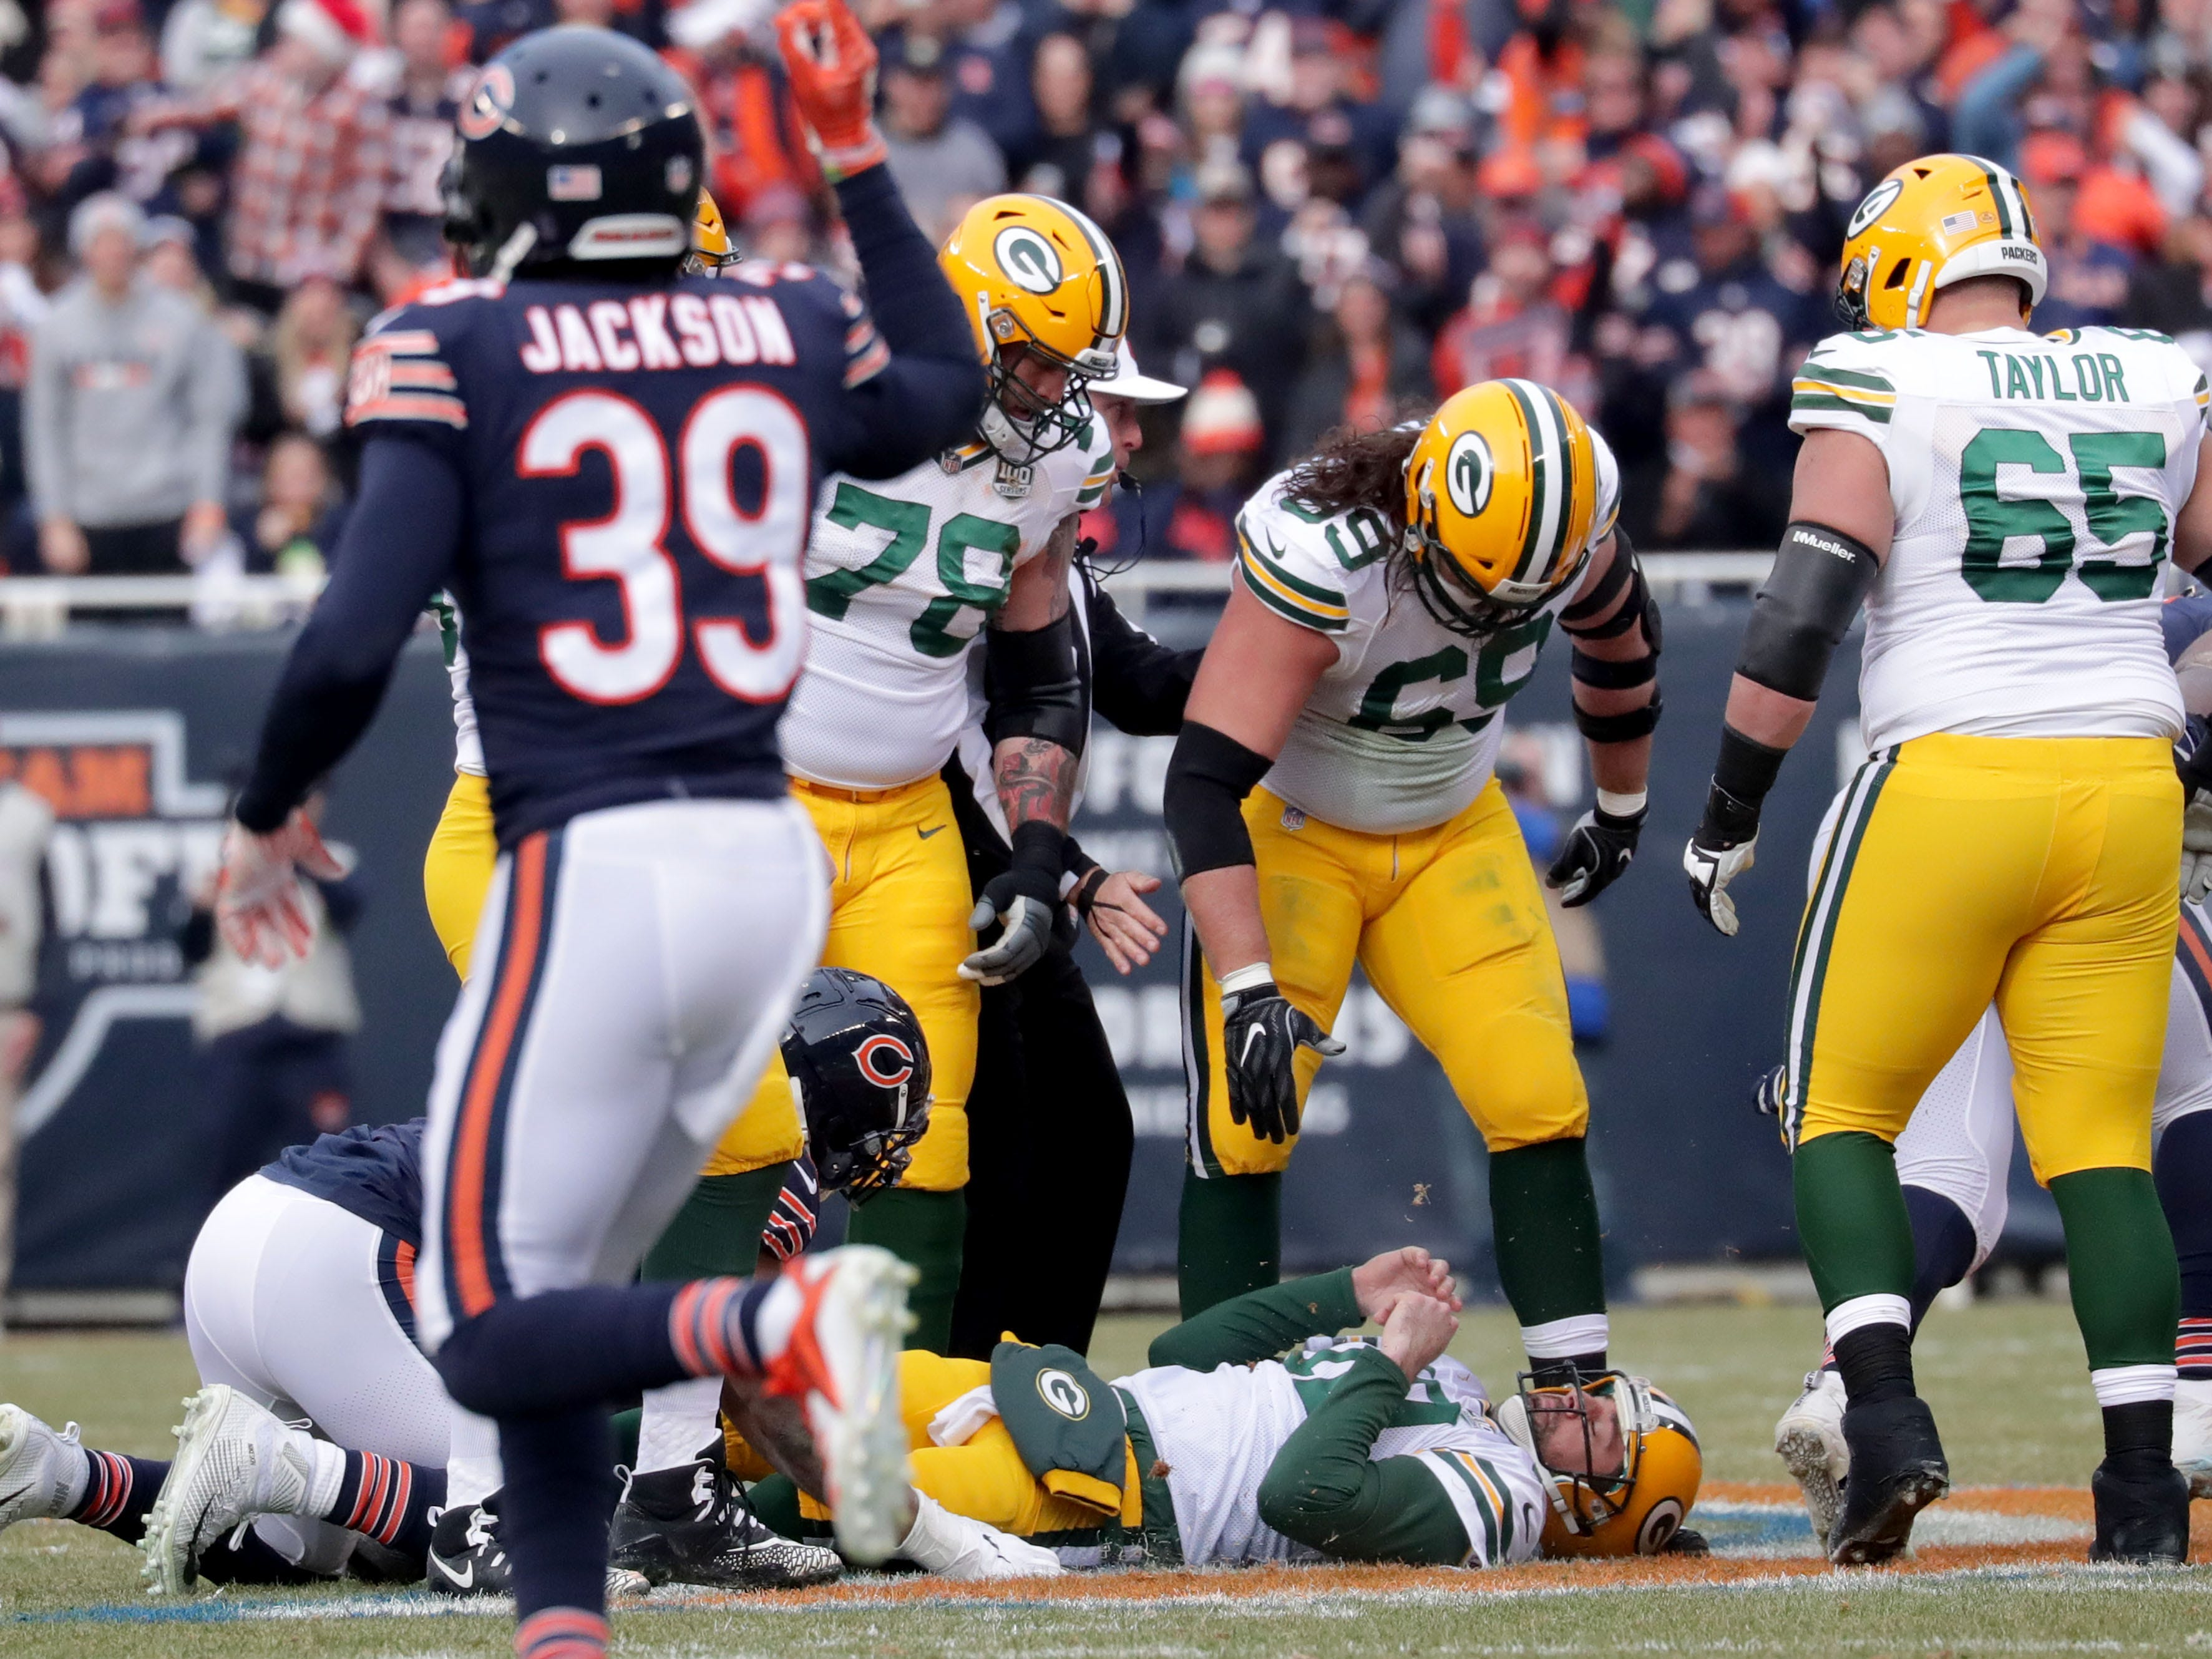 Green Bay Packers' Aaron Rodgers lays on the ground after a sack during the 1st half of the Green Bay Packers game against the Chicago Bears at Soldier Field Sunday, Dec. 16, 2018, in Chicago. Photo by Mike De Sisti / The Milwaukee Journal Sentinel